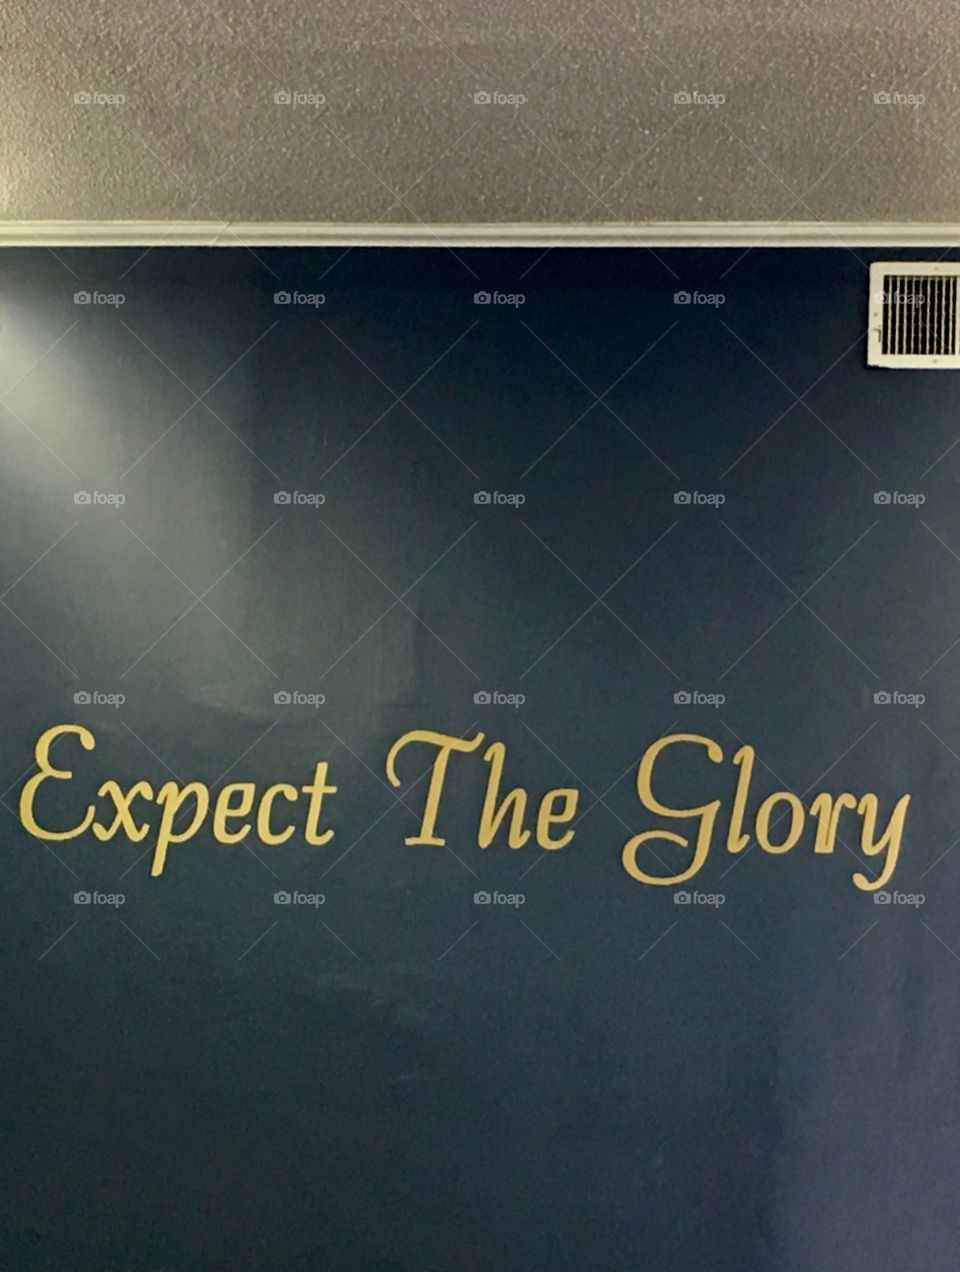 Expect The Glory